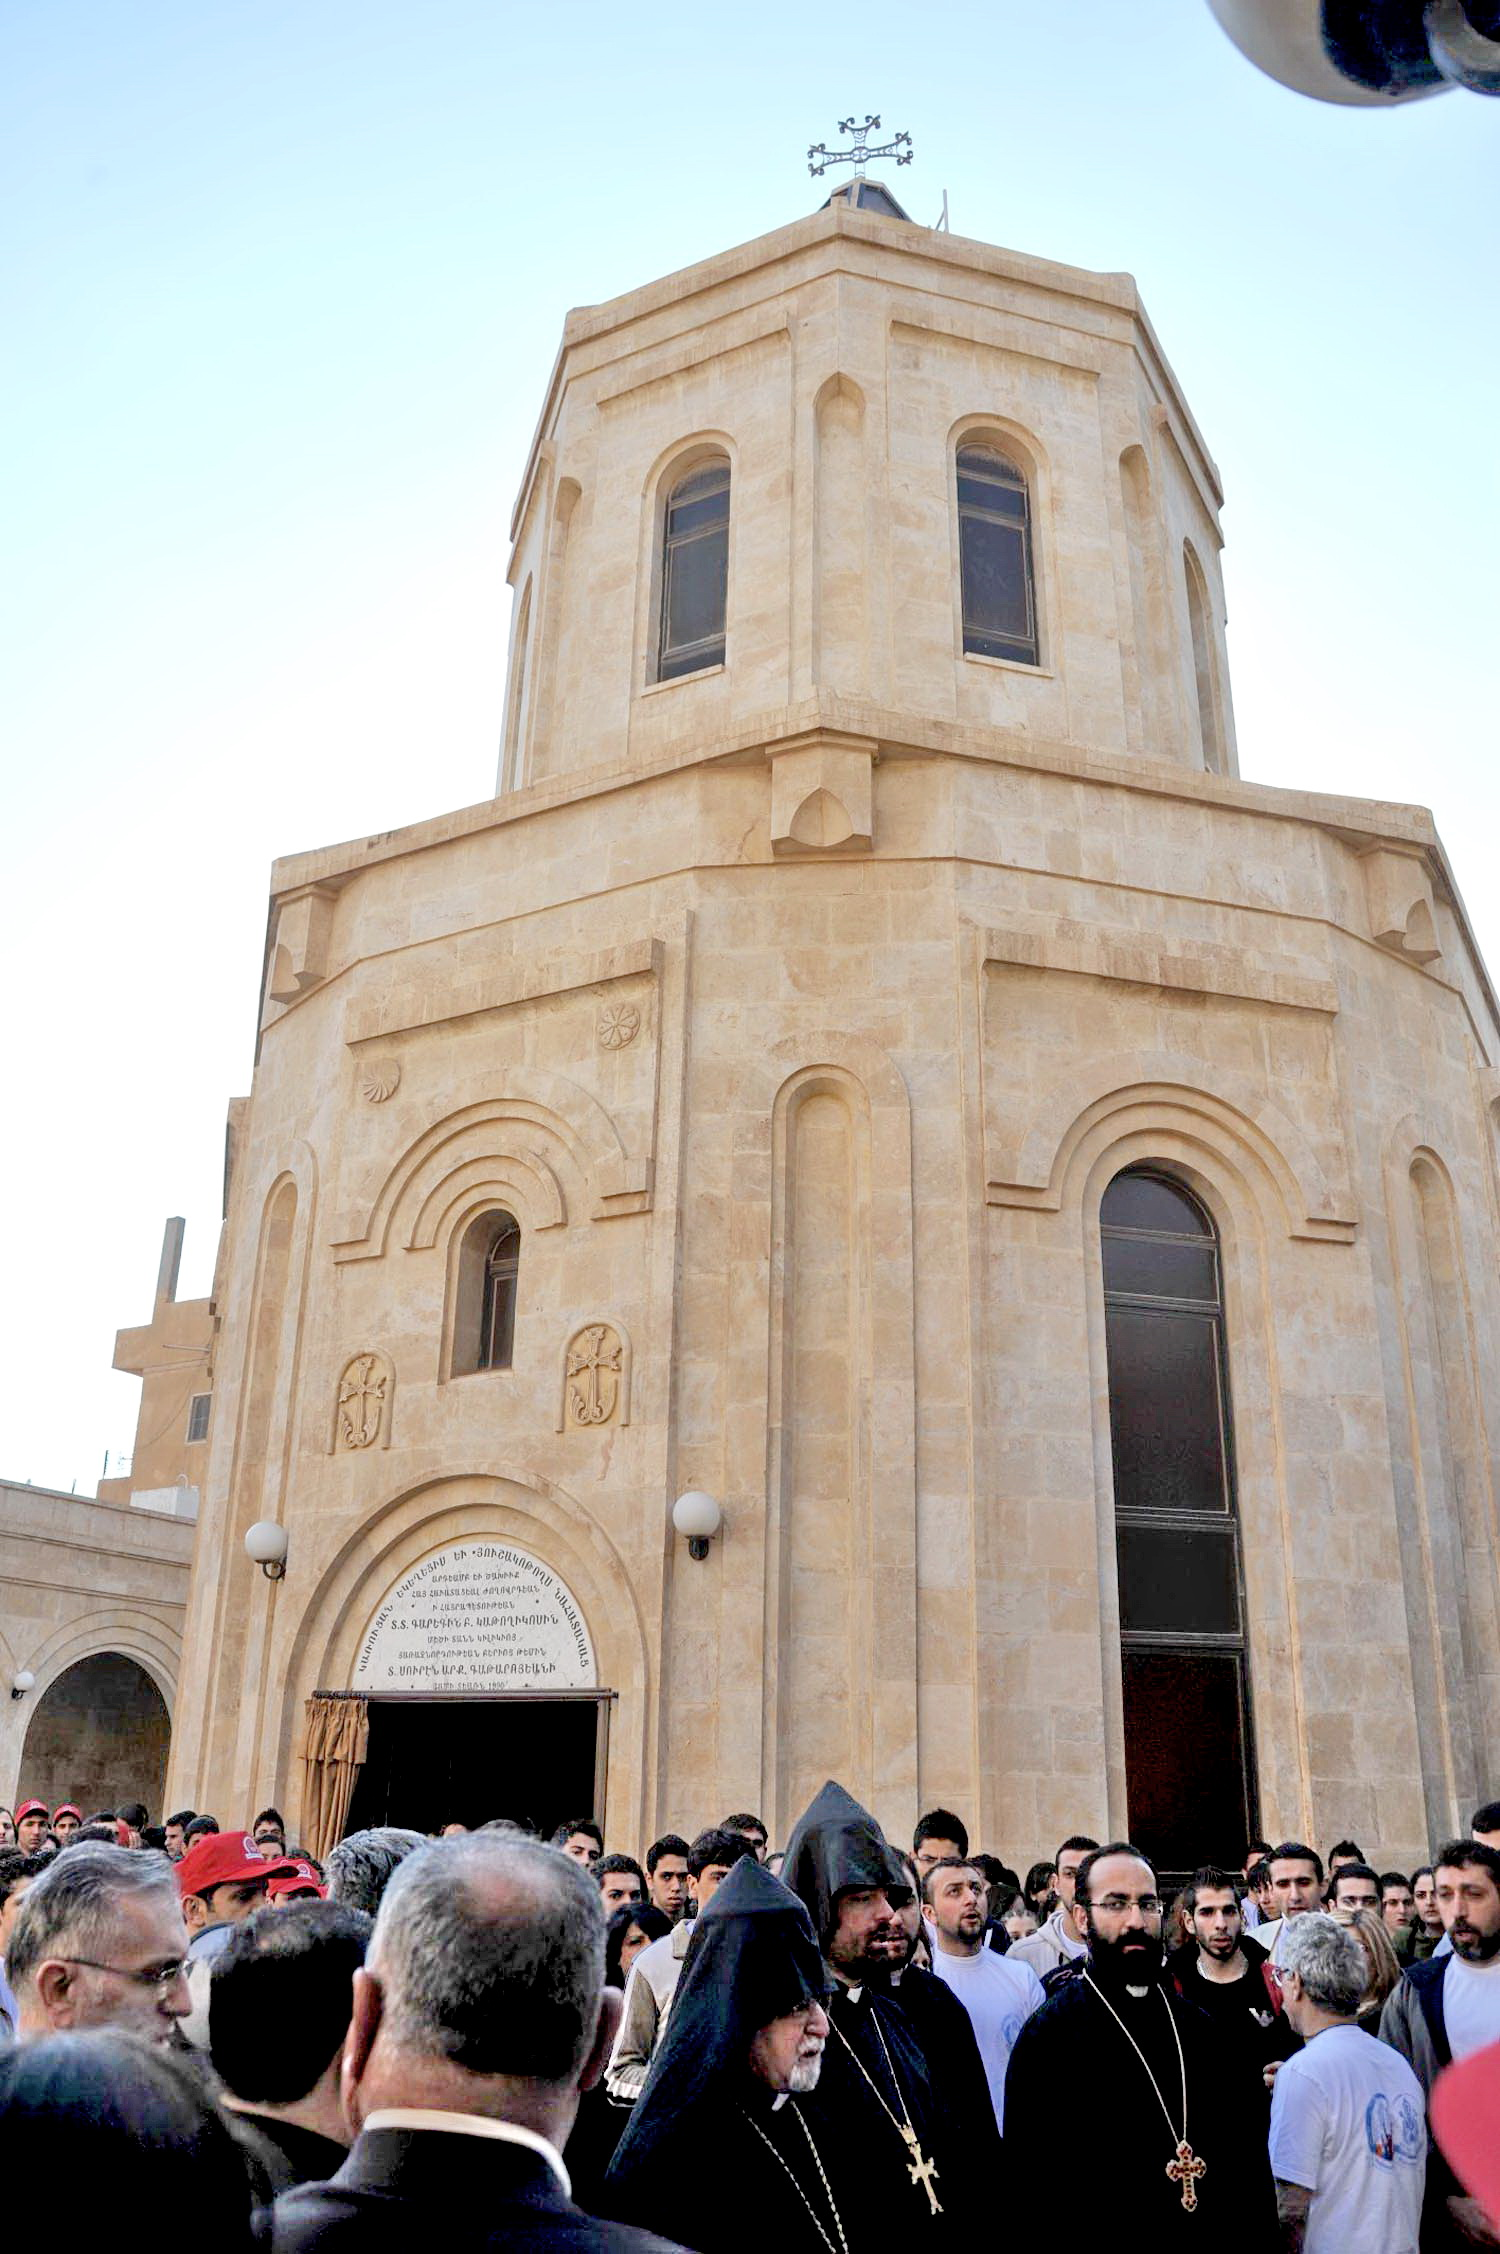 genocide in syria Only a handful of mostly sick or elderly christians remain in the isis stronghold of raqqa, and syrian christians fear the forces that have brought that city's population of gospel followers to the brink of extinction could do the same for the entire nation.